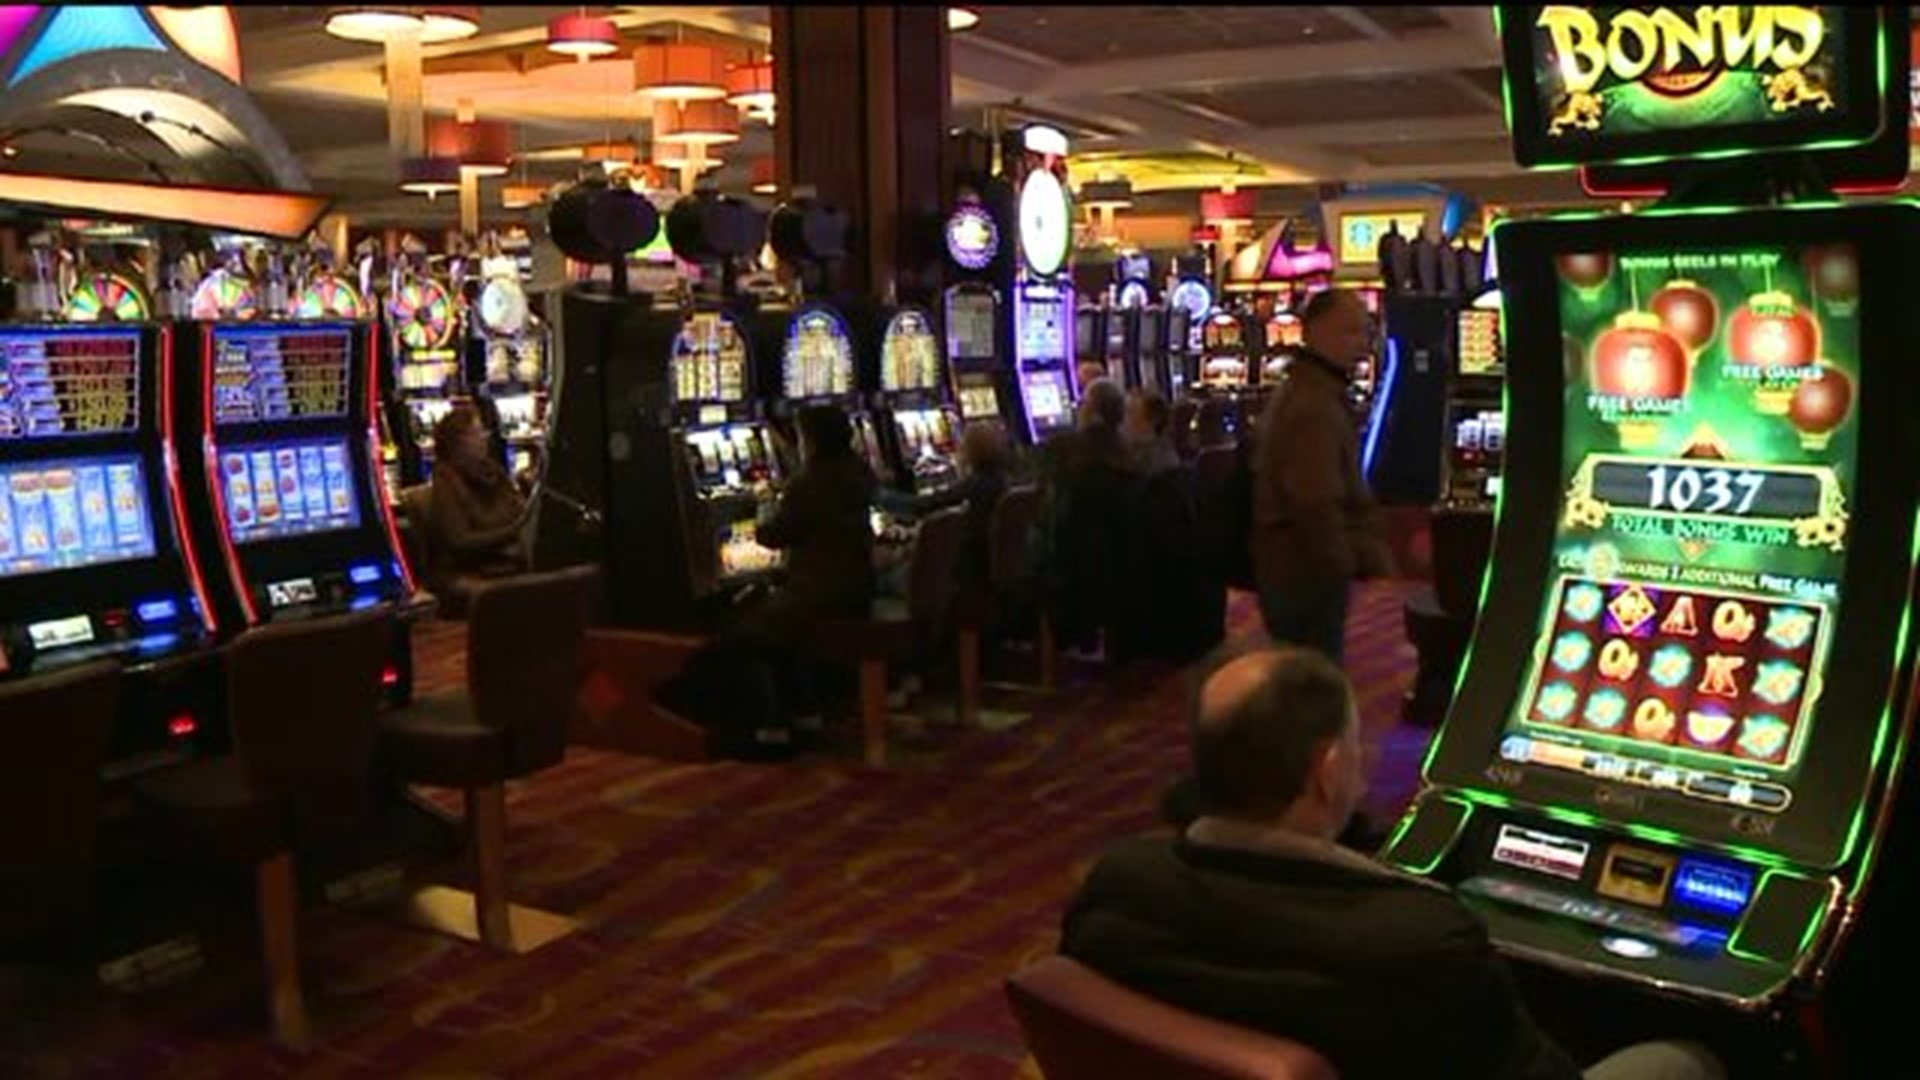 Mount airy casino super shot jackpot are roulette slot machines rigged